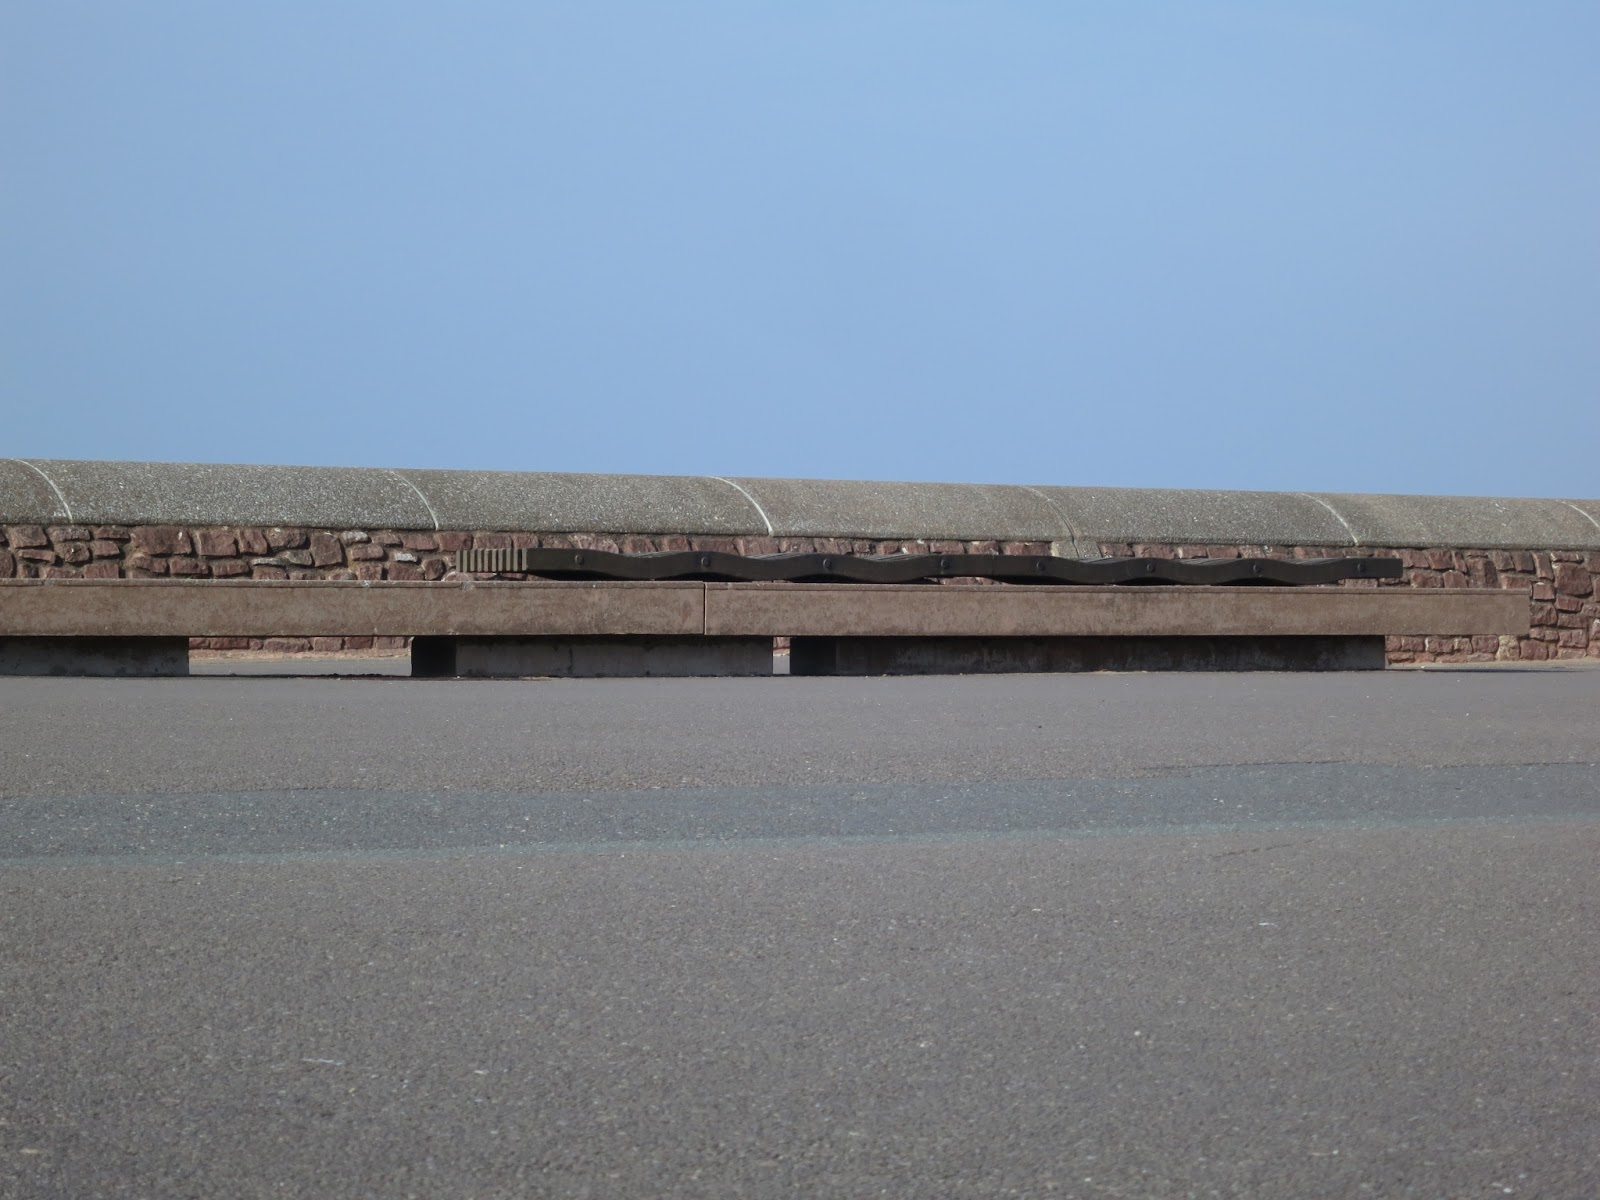 Long sea wall with bench against it between pavement and cloudless blue sky.